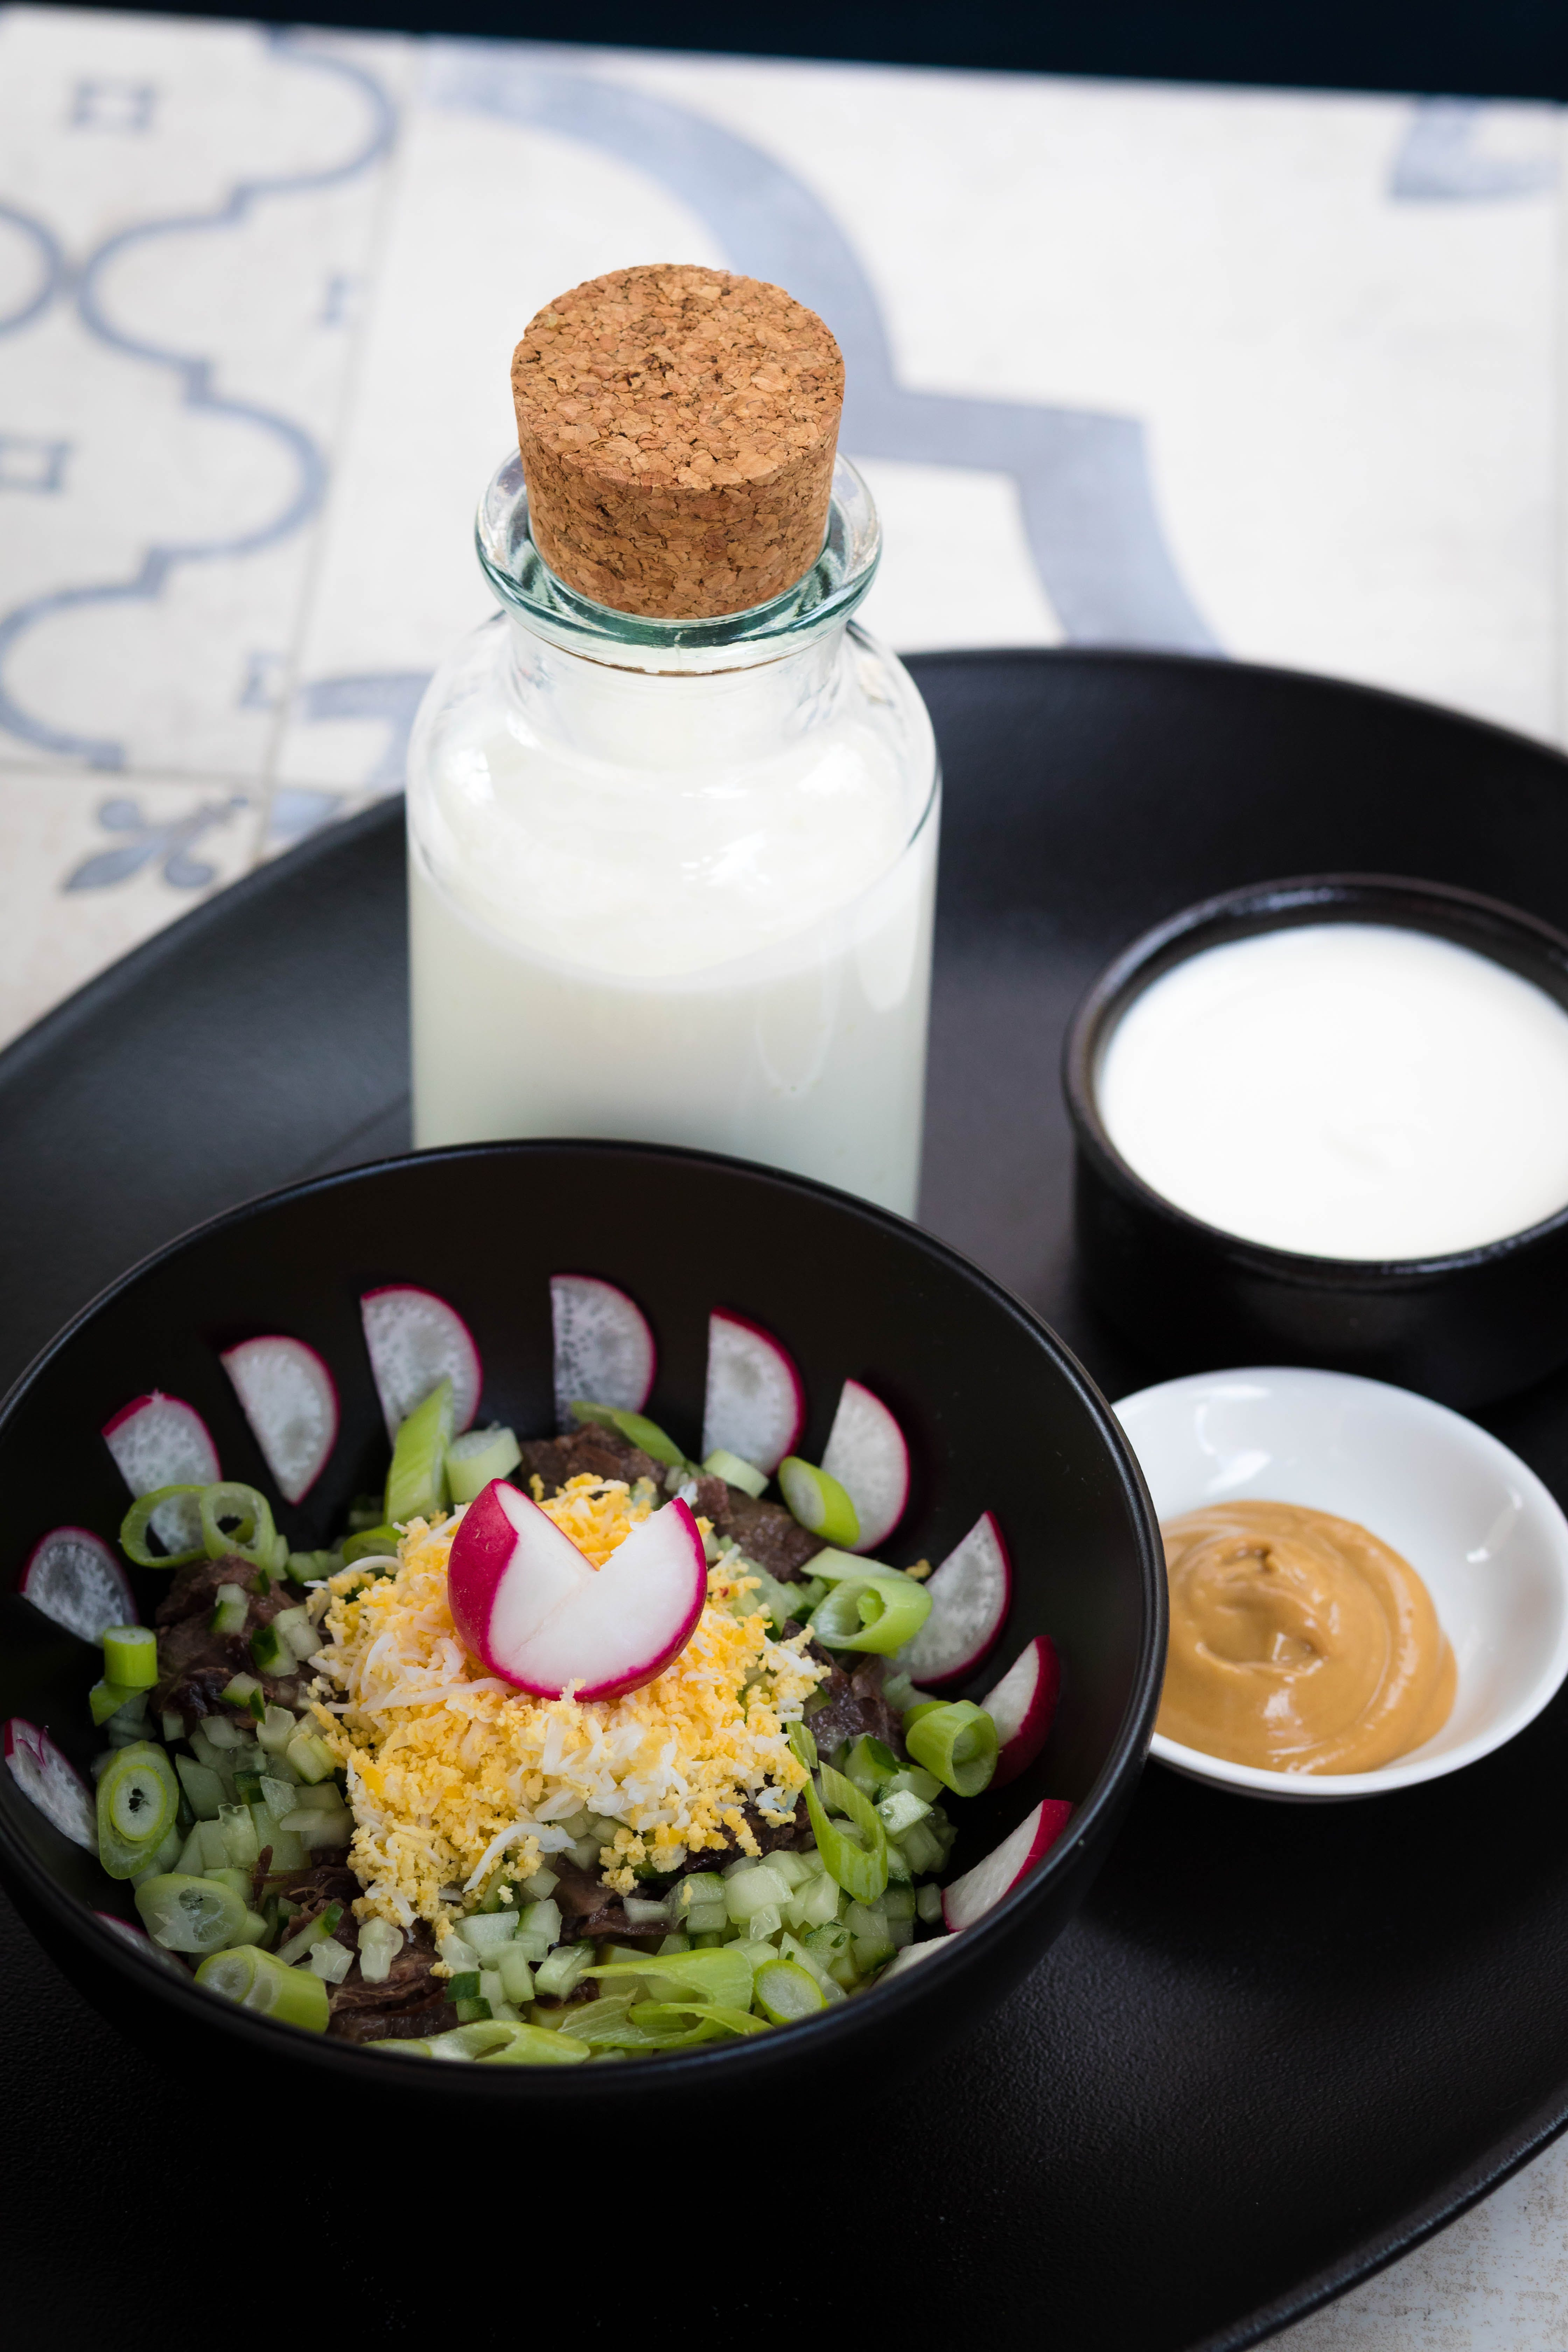 Vegetable Salad Beside Milk Bottle and Brown Sauce Dip on Round Black Tray